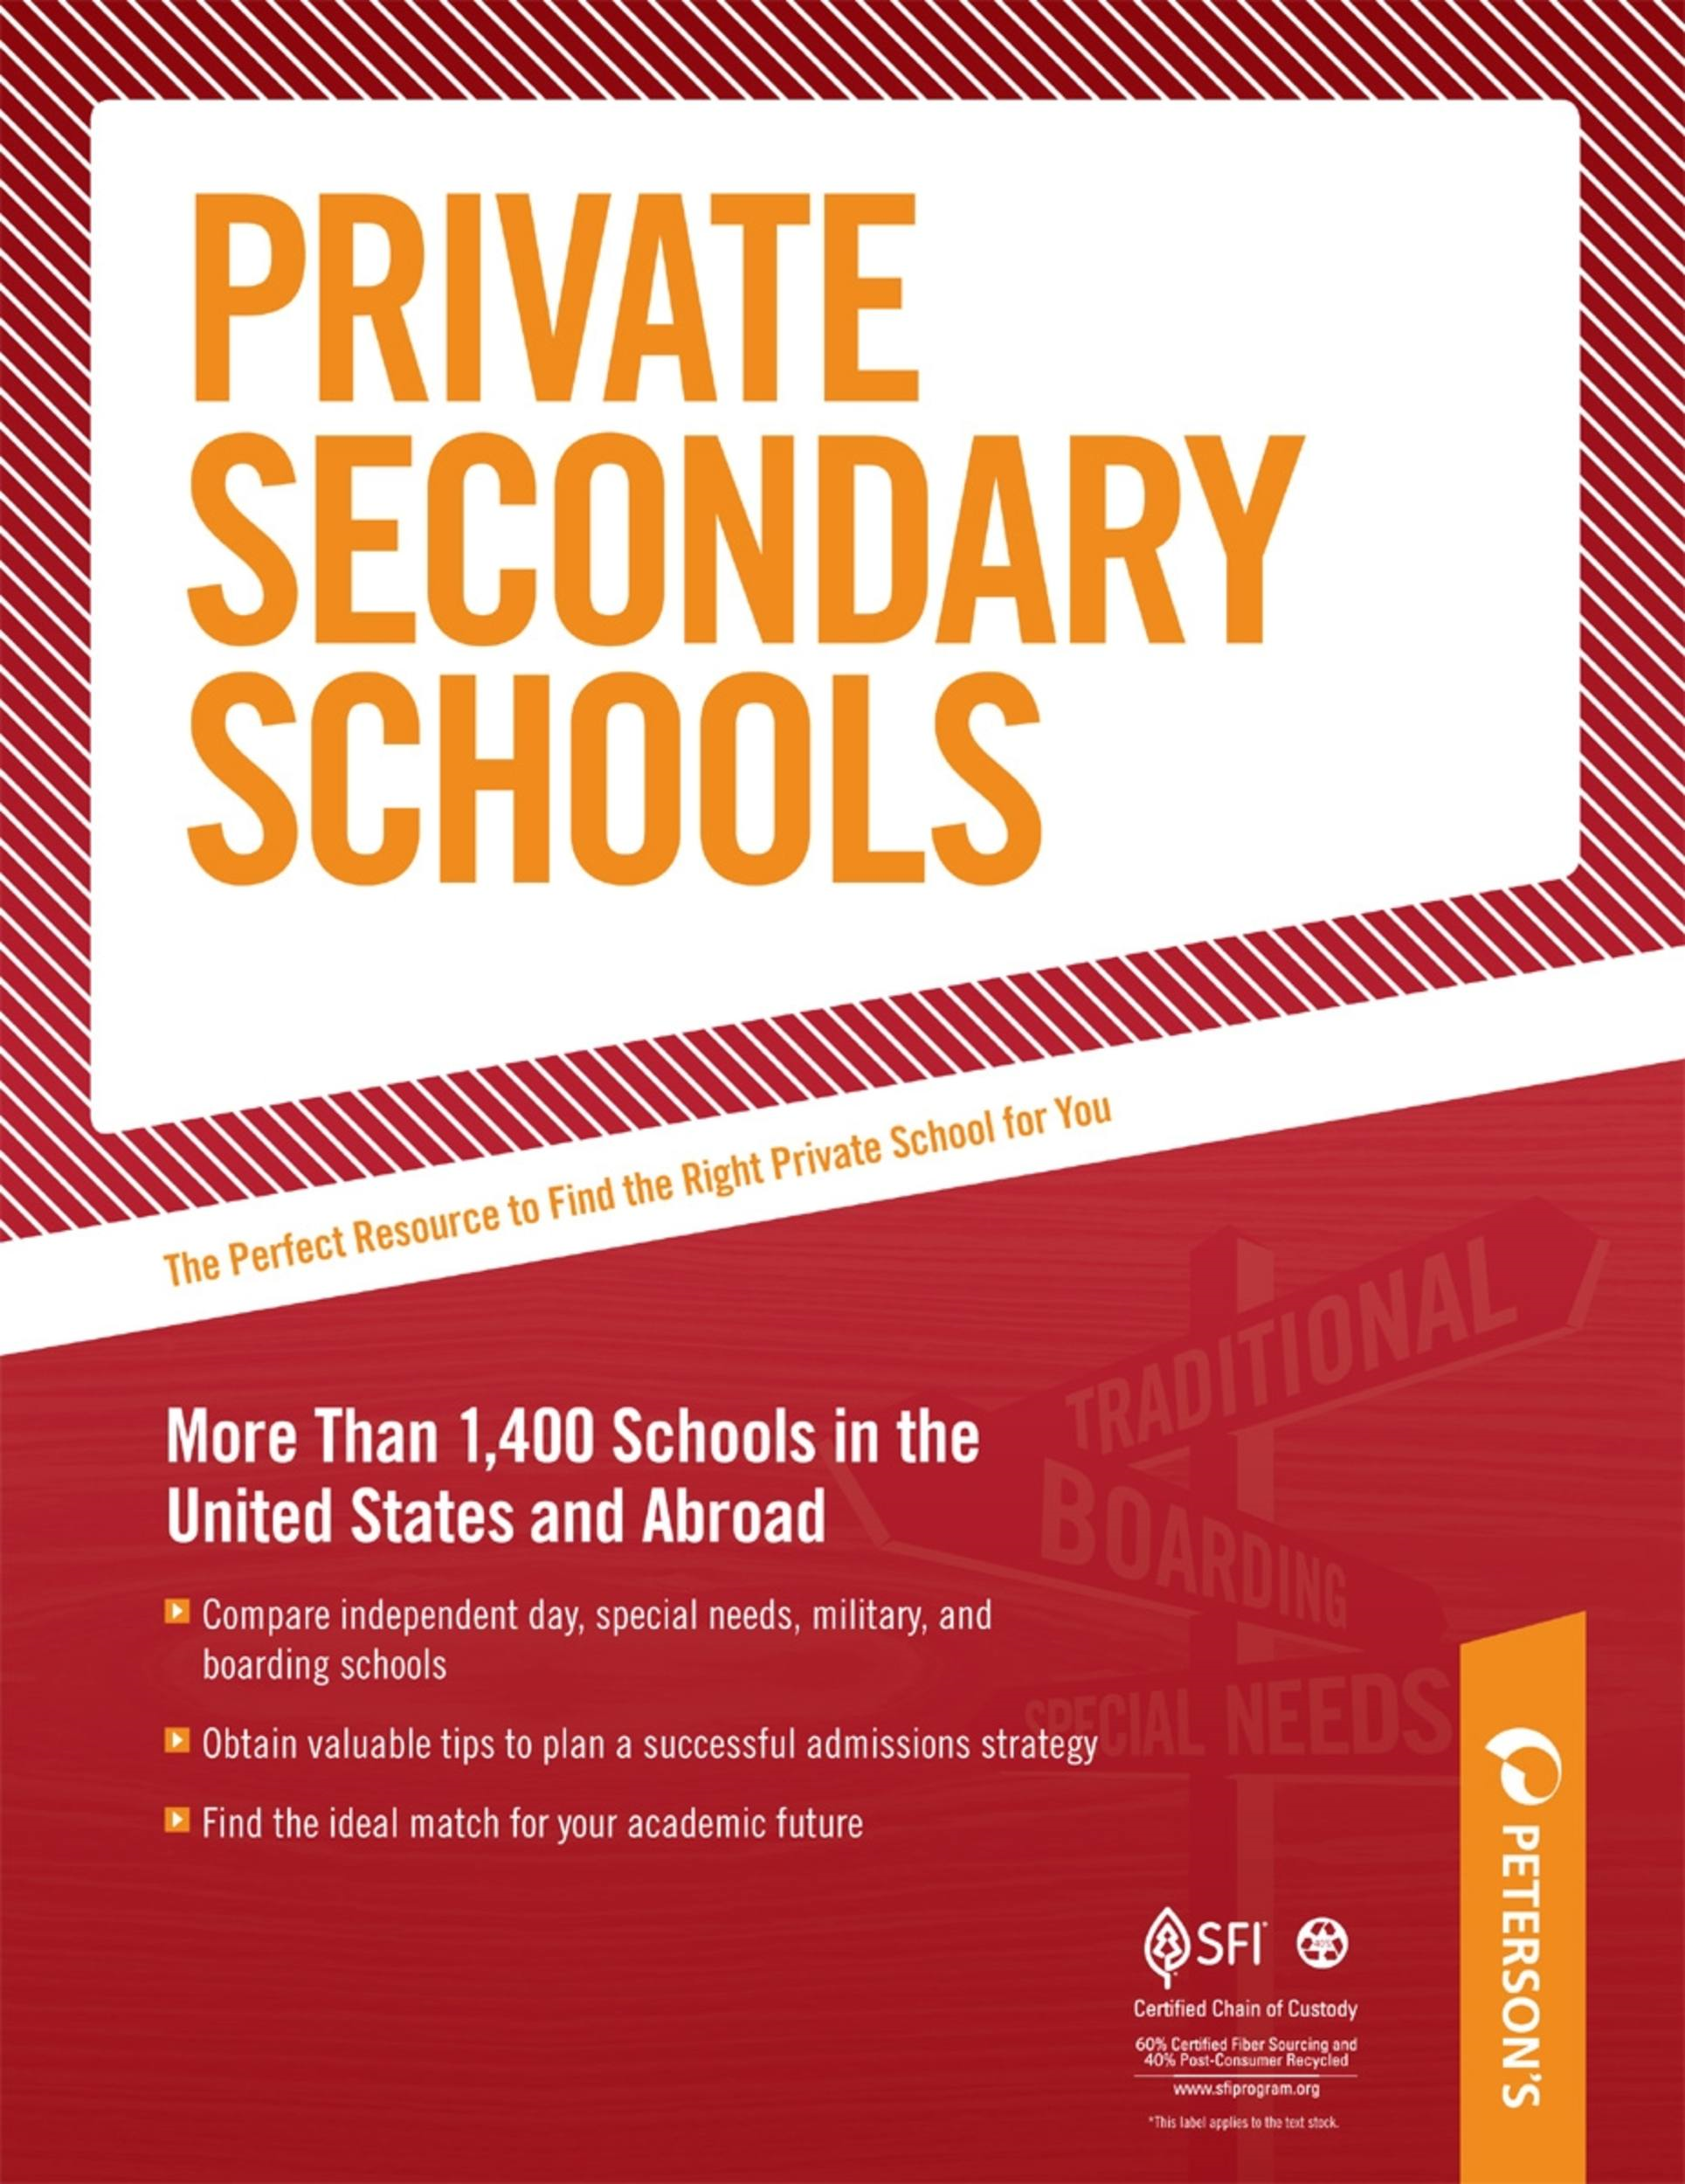 Private Secondary Schools: What You Should Know About Private Education